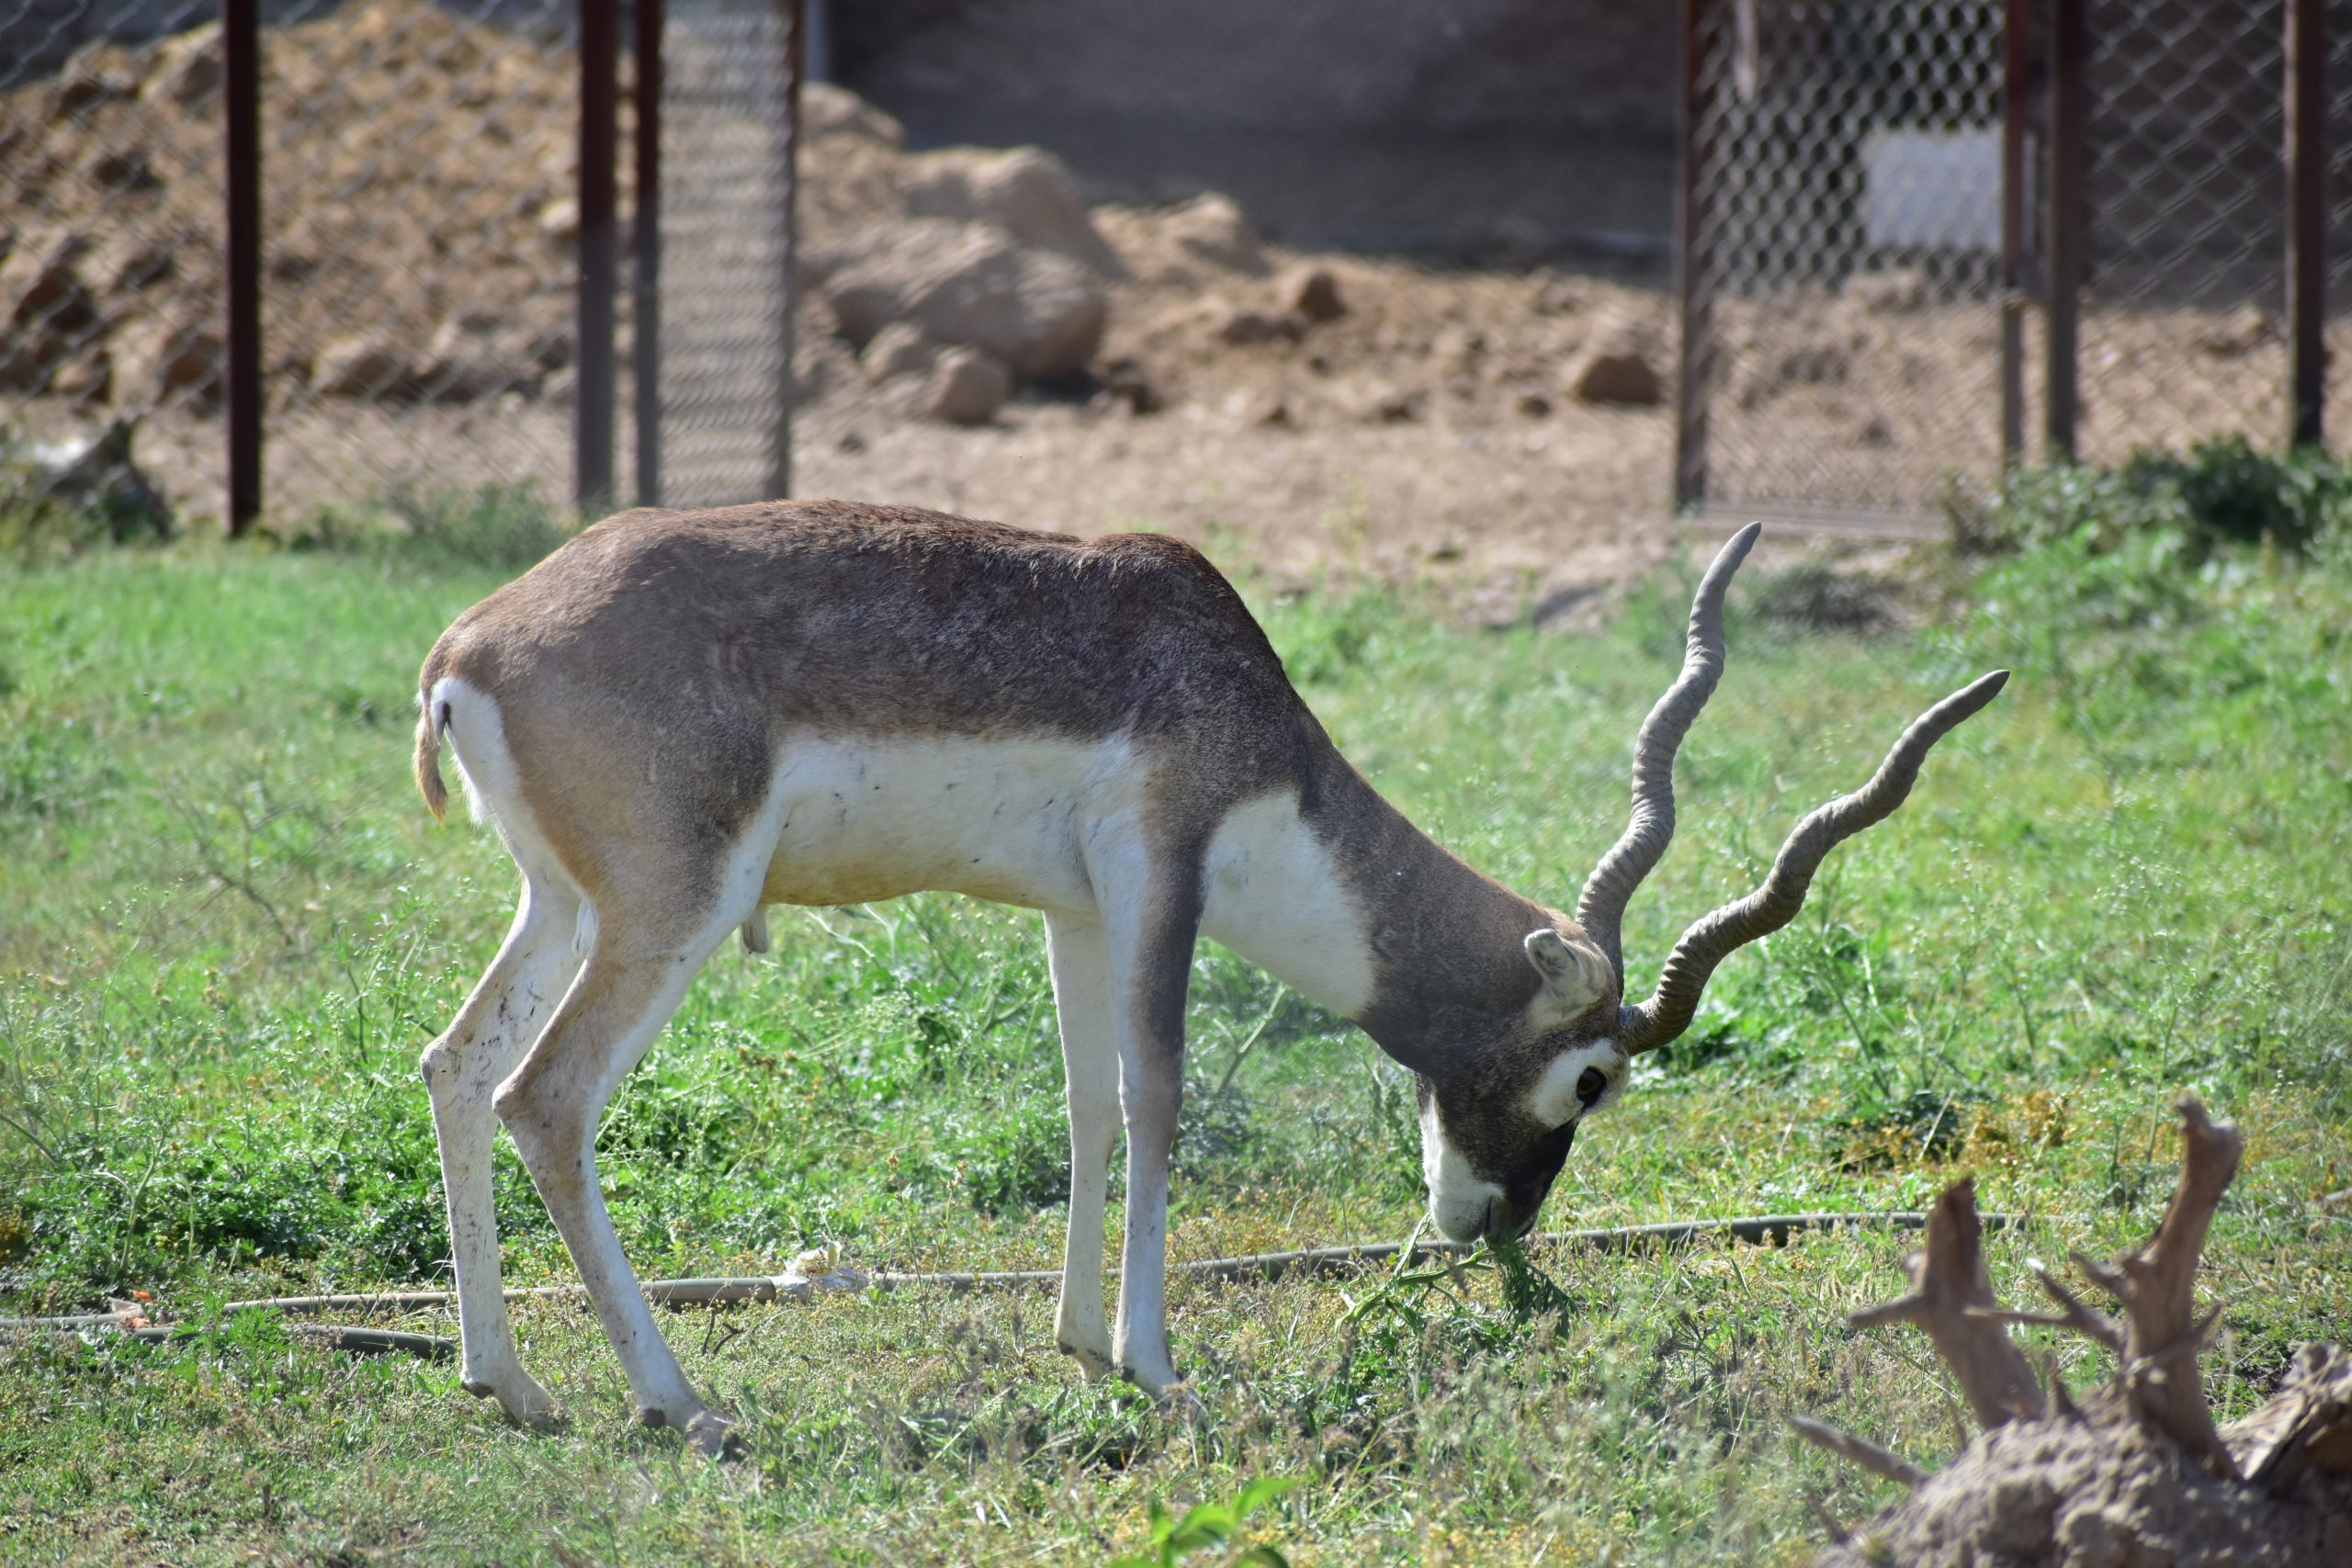 Blackbuck in zoo